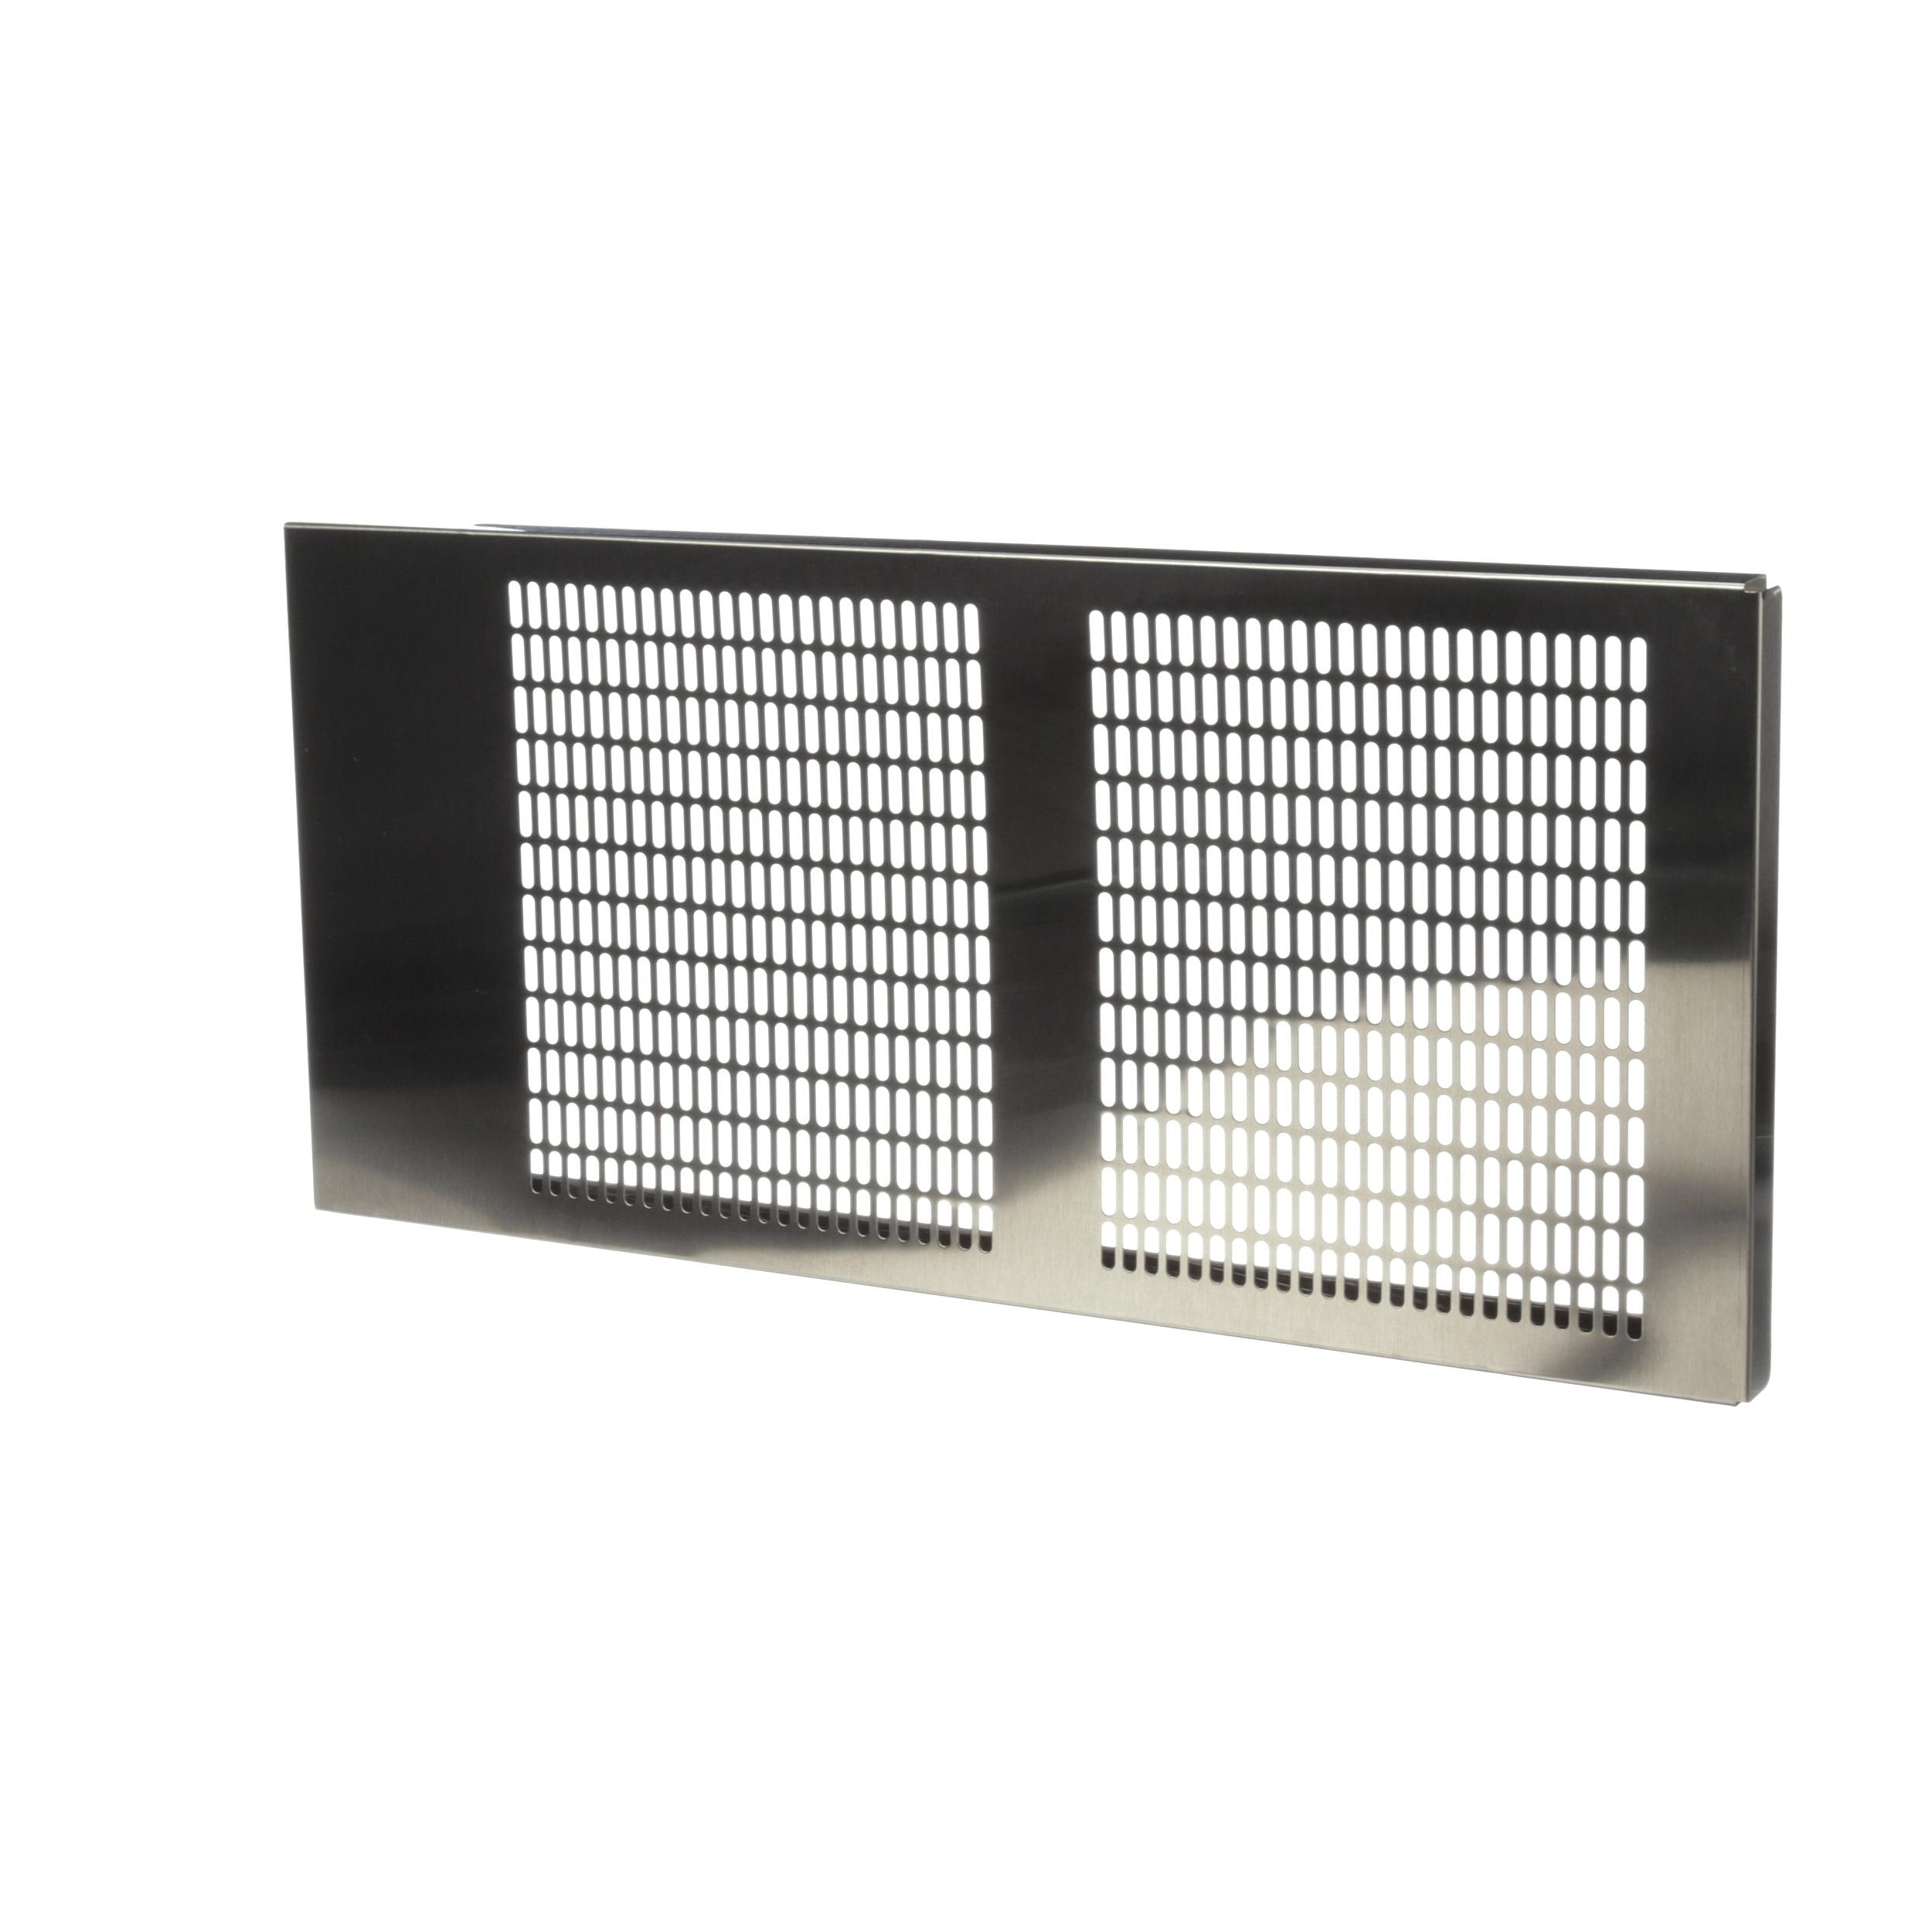 RANDELL FRONT CONDENSER COVER